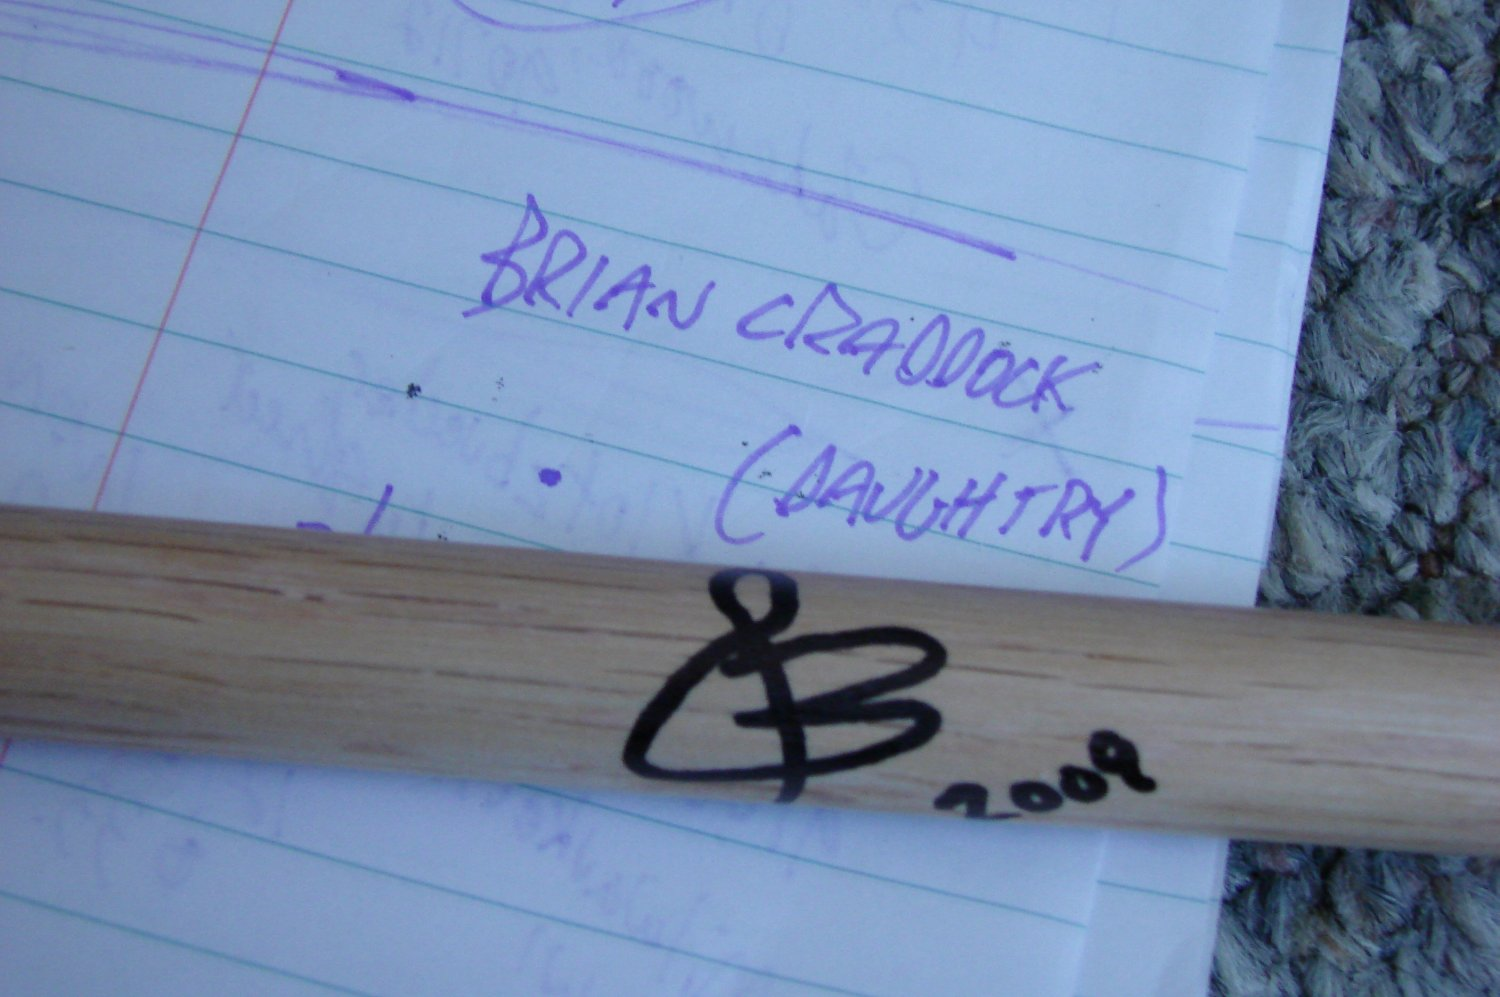 brian craddock /daughtry autographed drumstick